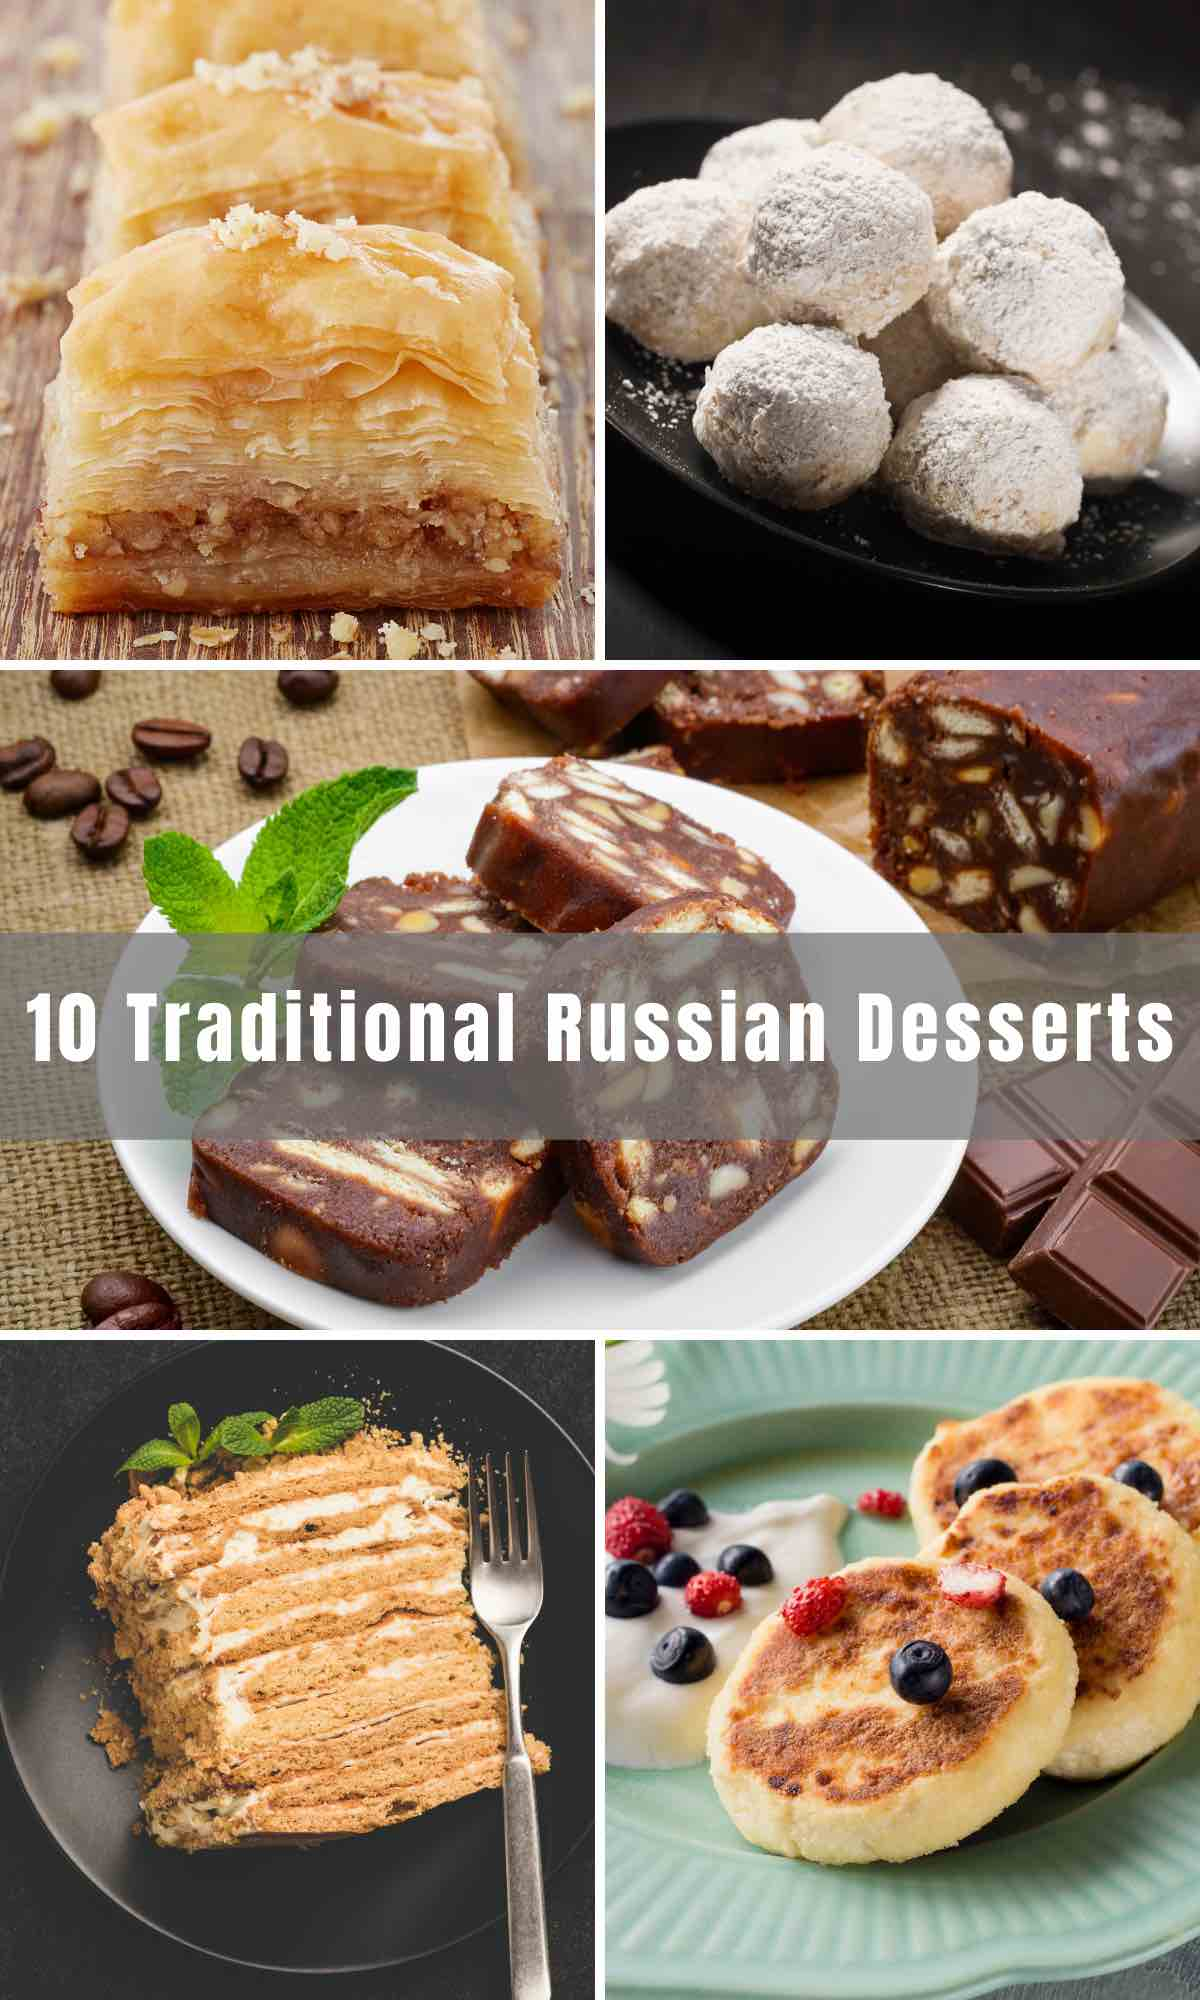 Want to take your sweet tooth on a journey? Look no further than these easy Traditional Russian Desserts that can be made at home. Russians love their desserts! From cakes to chocolates to truffles, Russians have a variety of irresistible confections to end your meal on a high note.